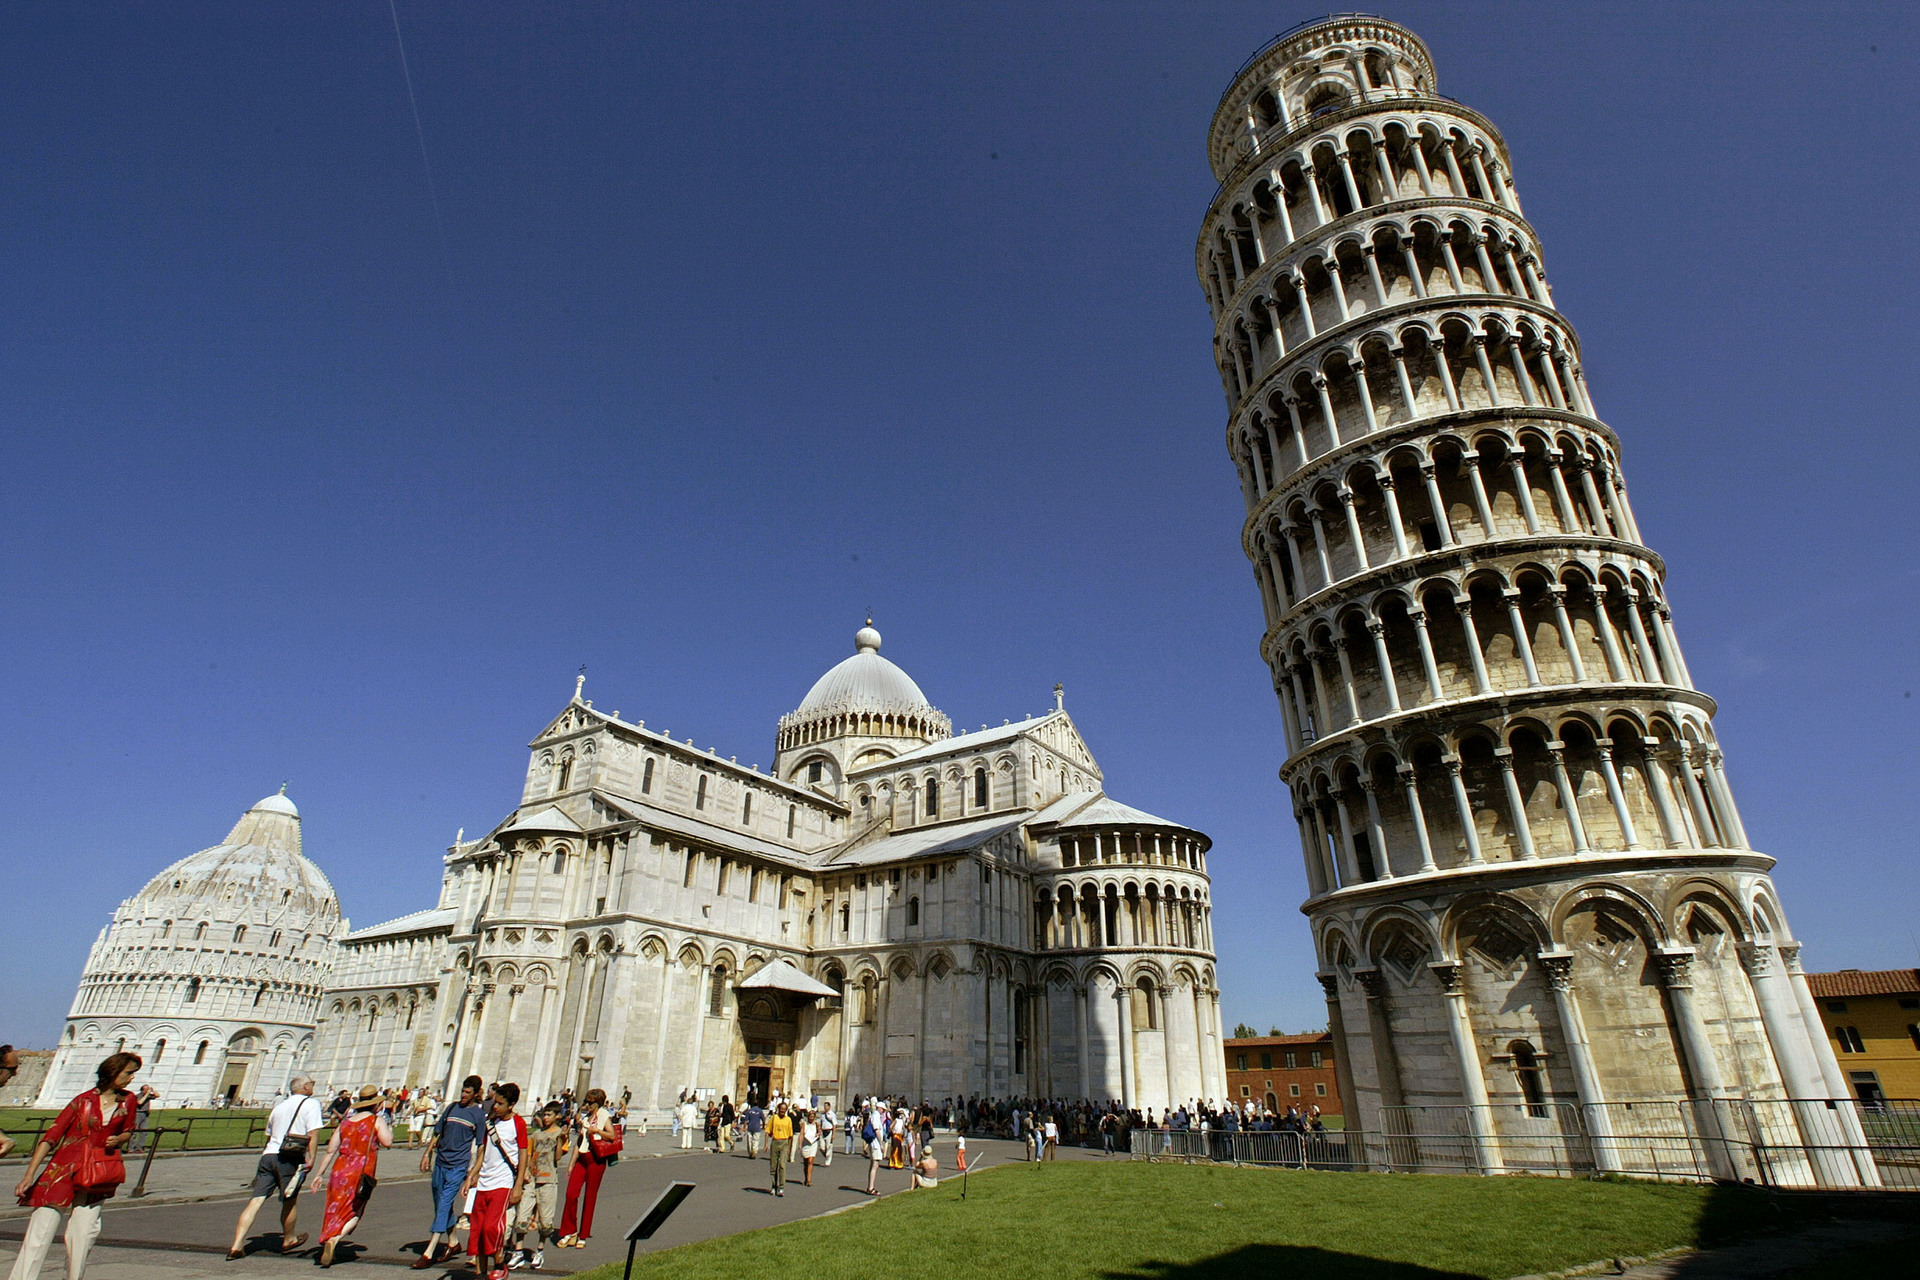 Leaning Tower Of Pisa - European Tour Package